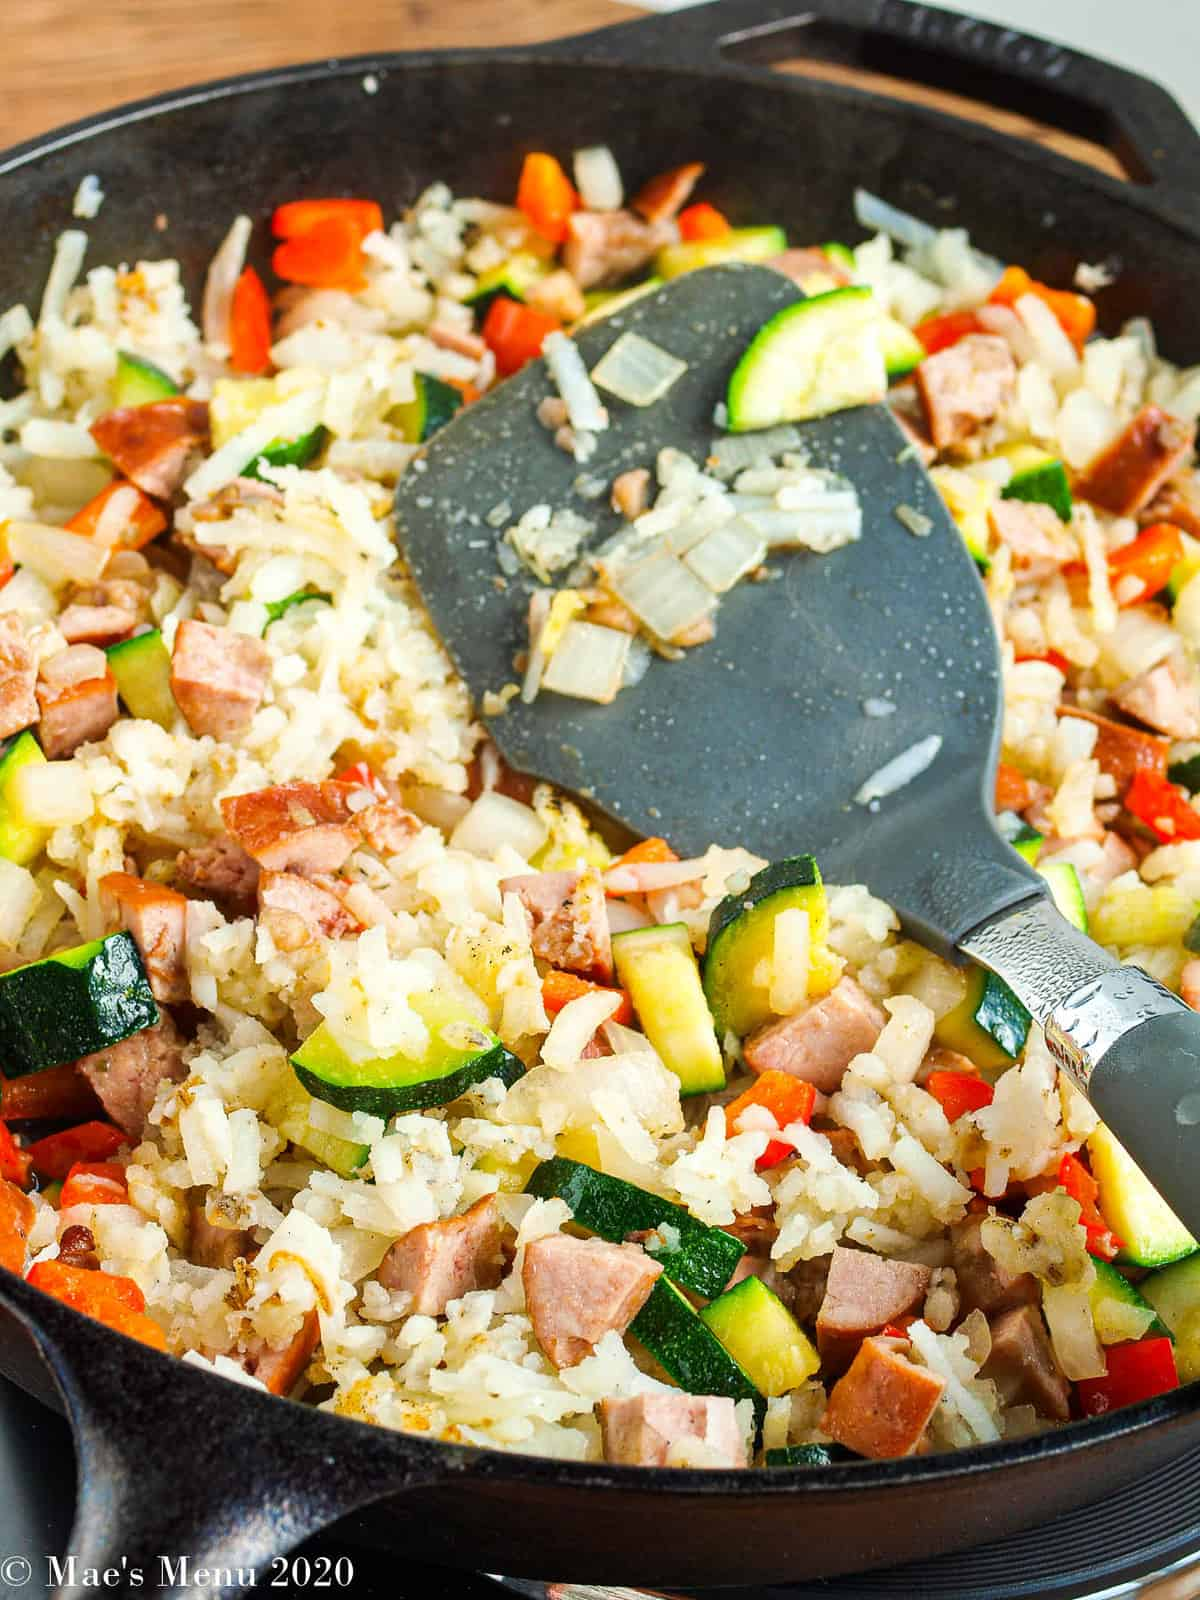 A side shot of a cast iron skillet with shredded hash browns, zucchini, peppers, sausage, and onions in it